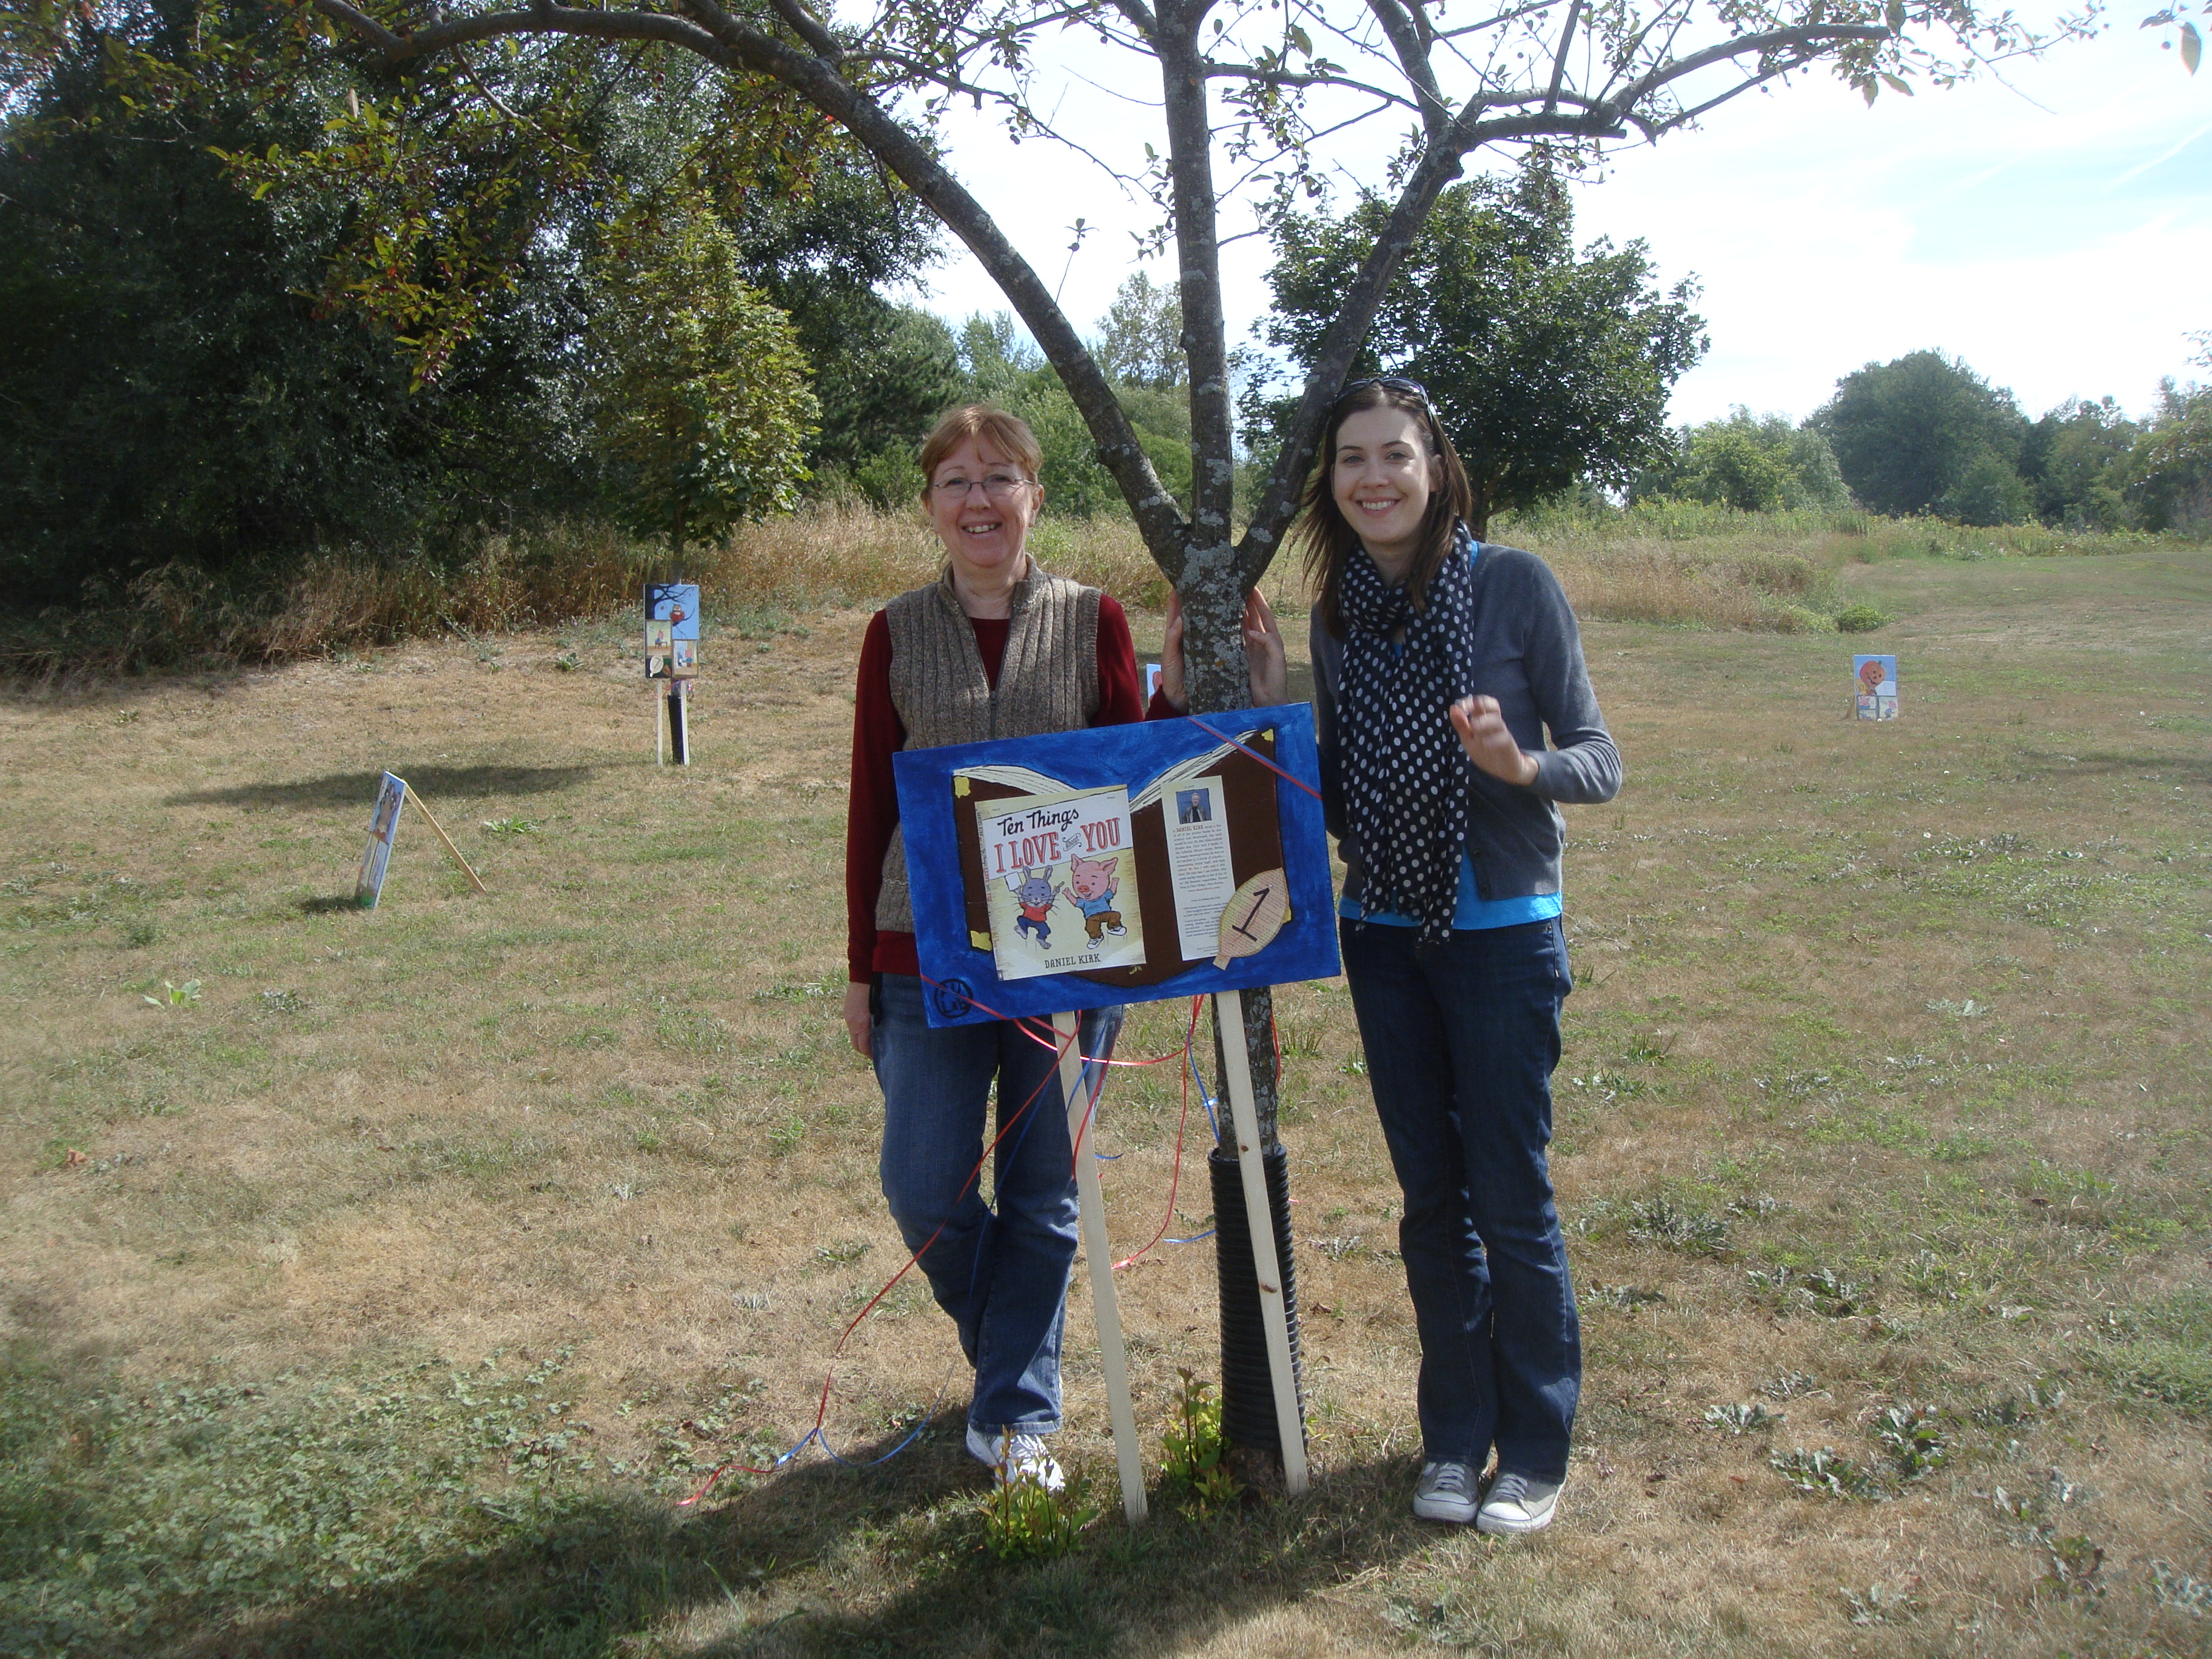 cassie-banaszak-and-jane-walsh-pose-by-a-storyboard-at-booktoberfest